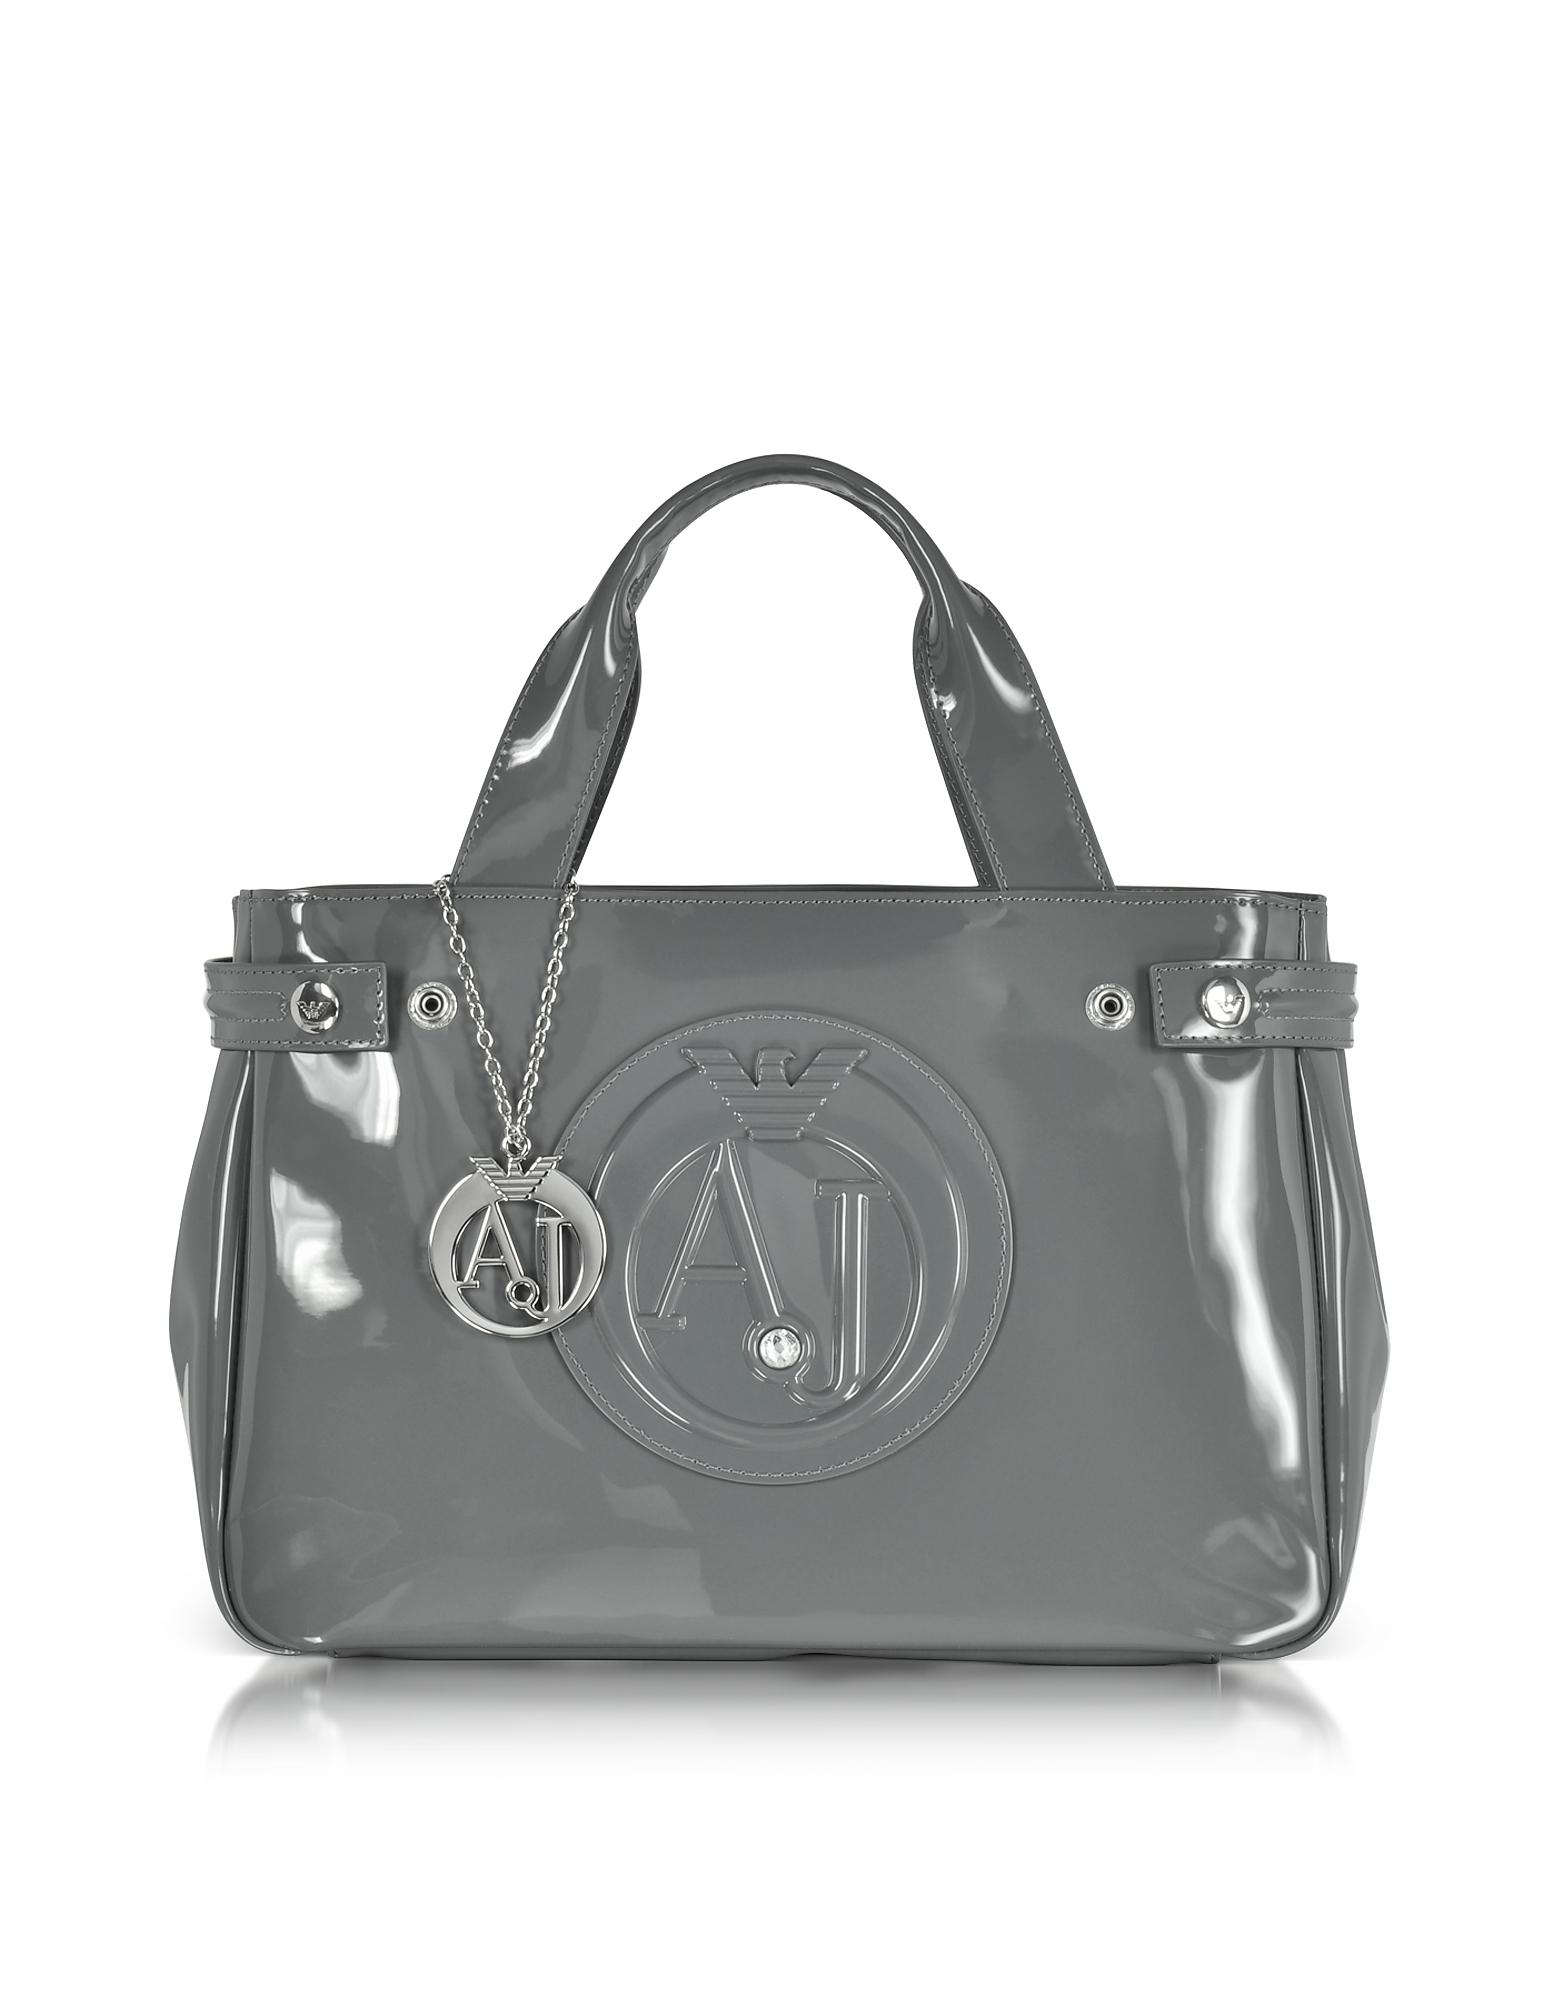 530c69985475 Lyst - Armani Jeans Medium Gray Faux Patent Leather Tote Bag in Gray